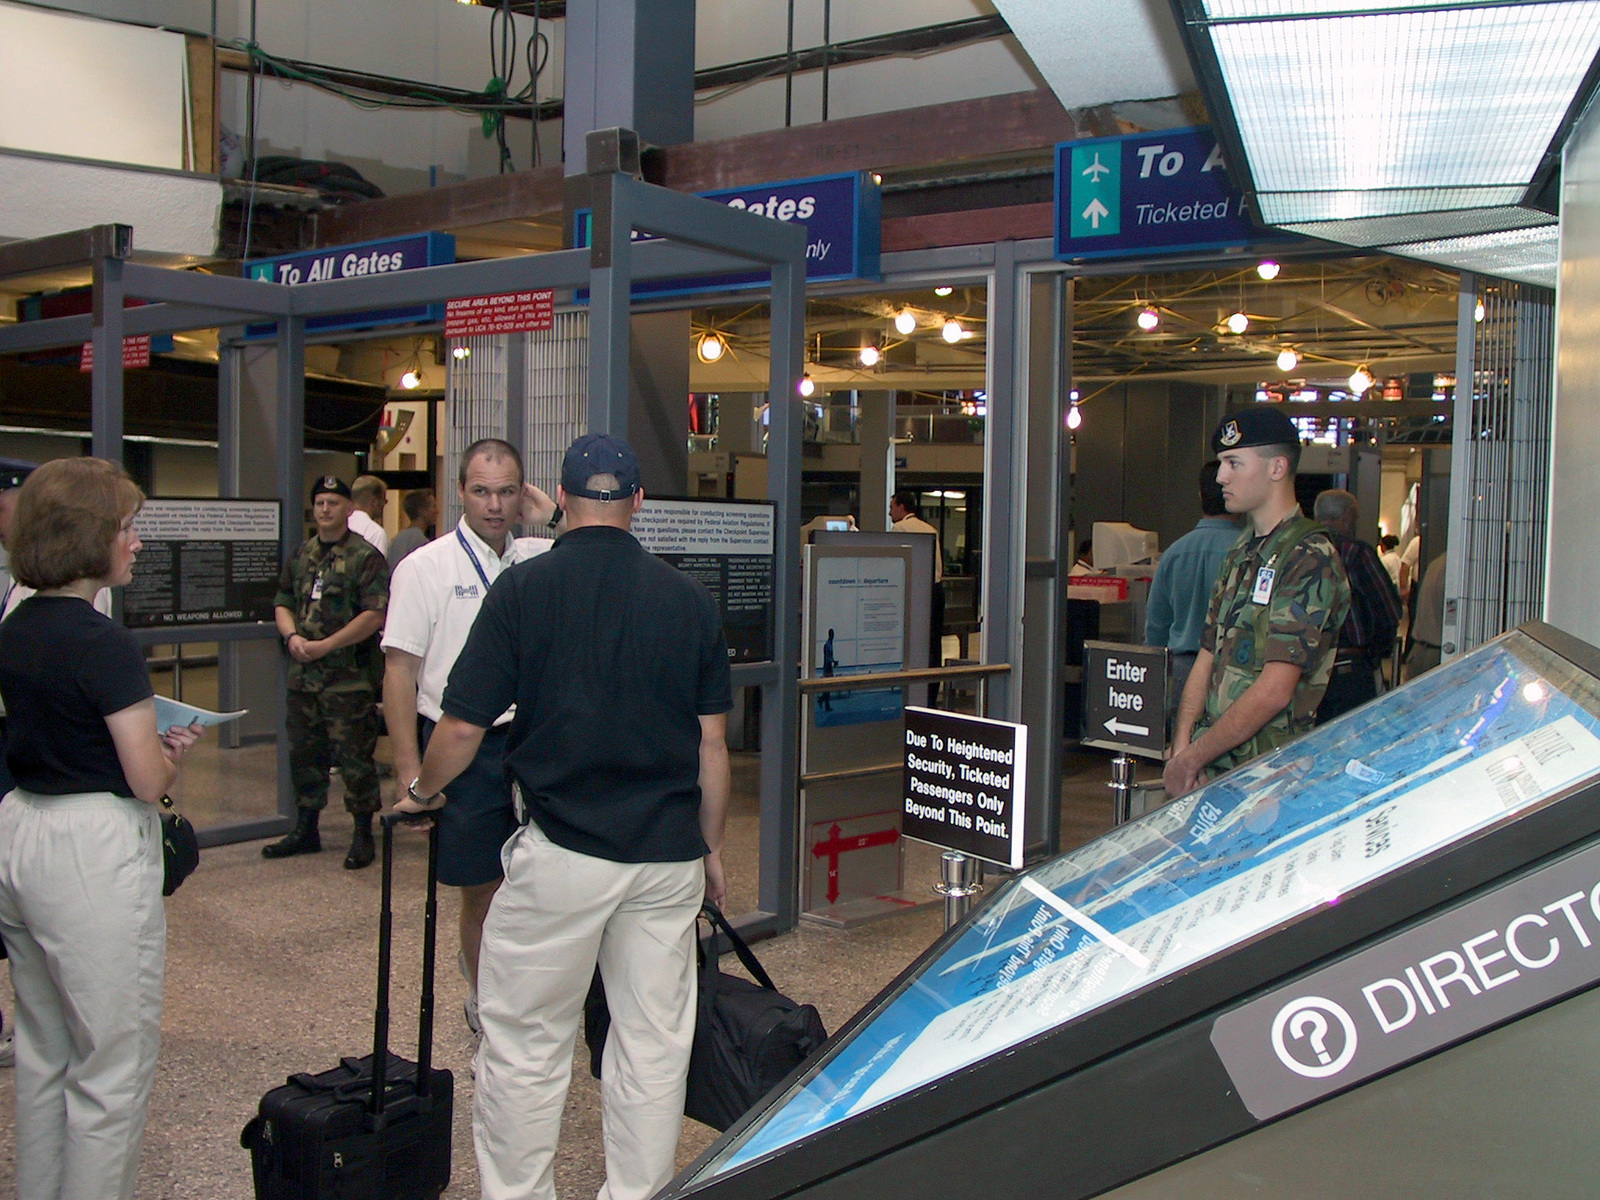 SENIOR AIRMAN (SRA) Andrew Haywood, (right), USAF, 151st Security Forces Squadron (SFS), stands guard at the Salt Lake International Airport, September 28, 2001. Utah's governor activated the Utah Air Guardsman in support of Operation NOBLE EAGLE